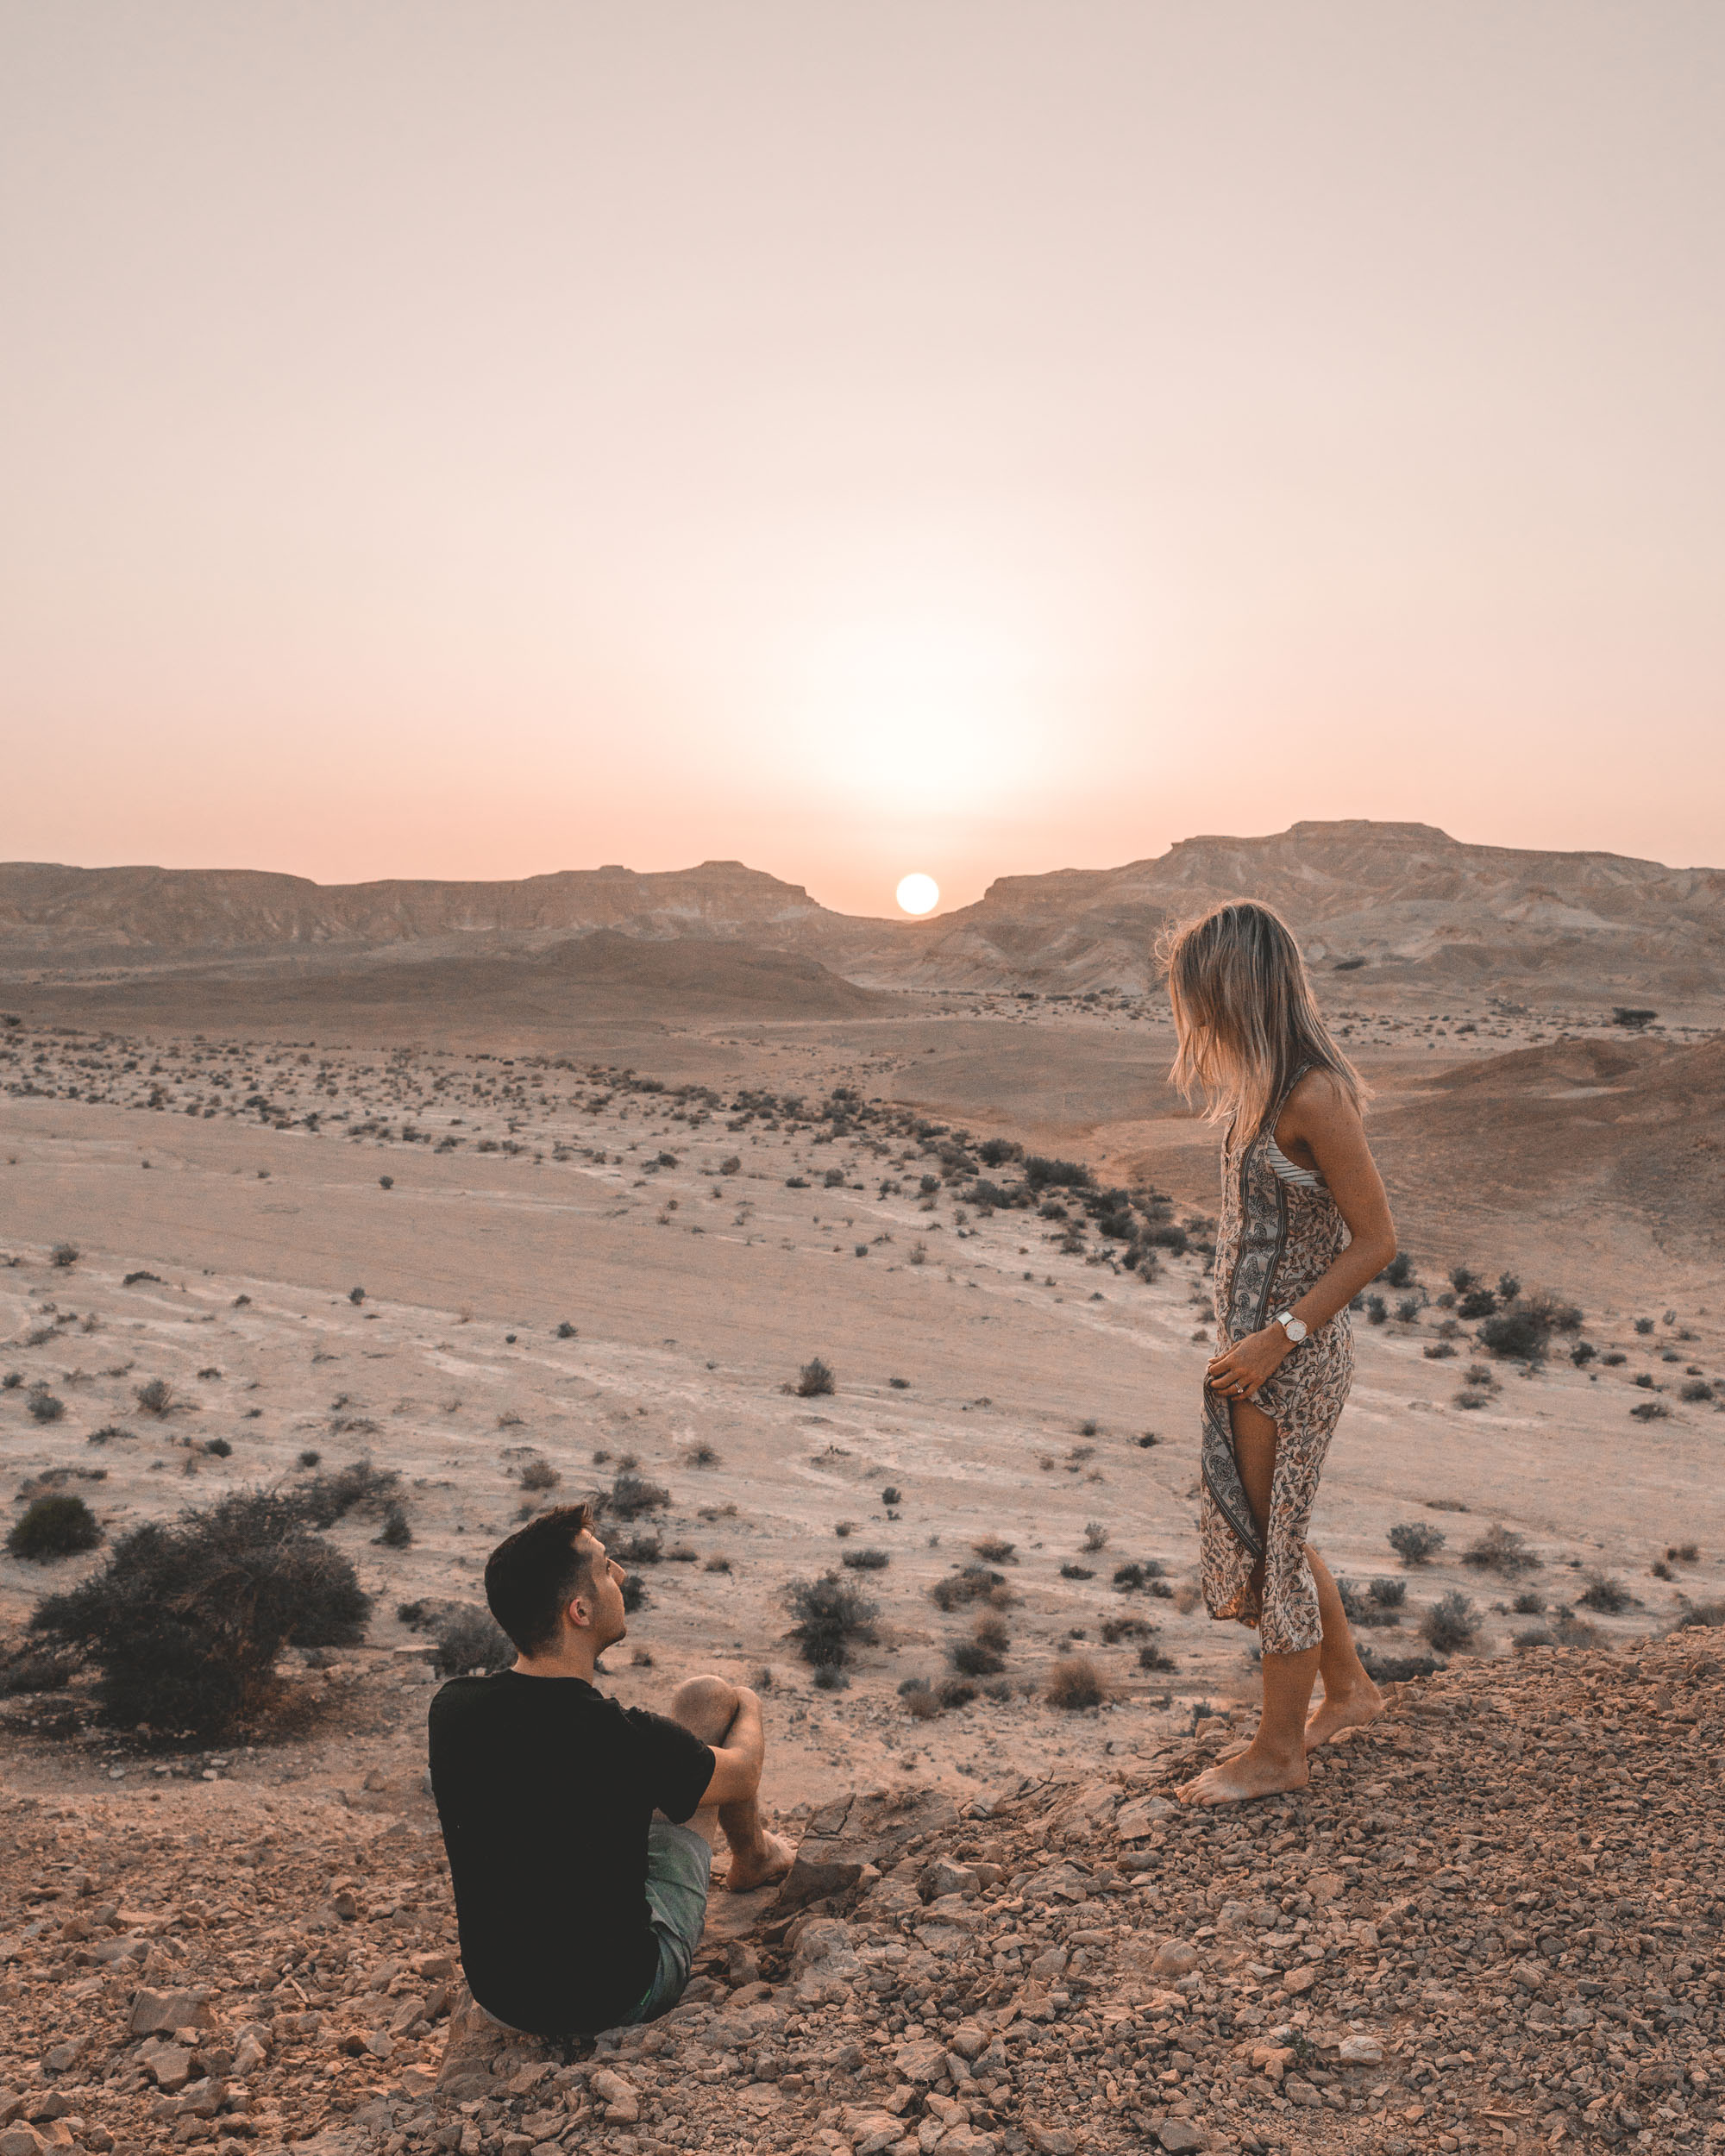 Sunset while glamping in the desert in the Negev Desert in Israel